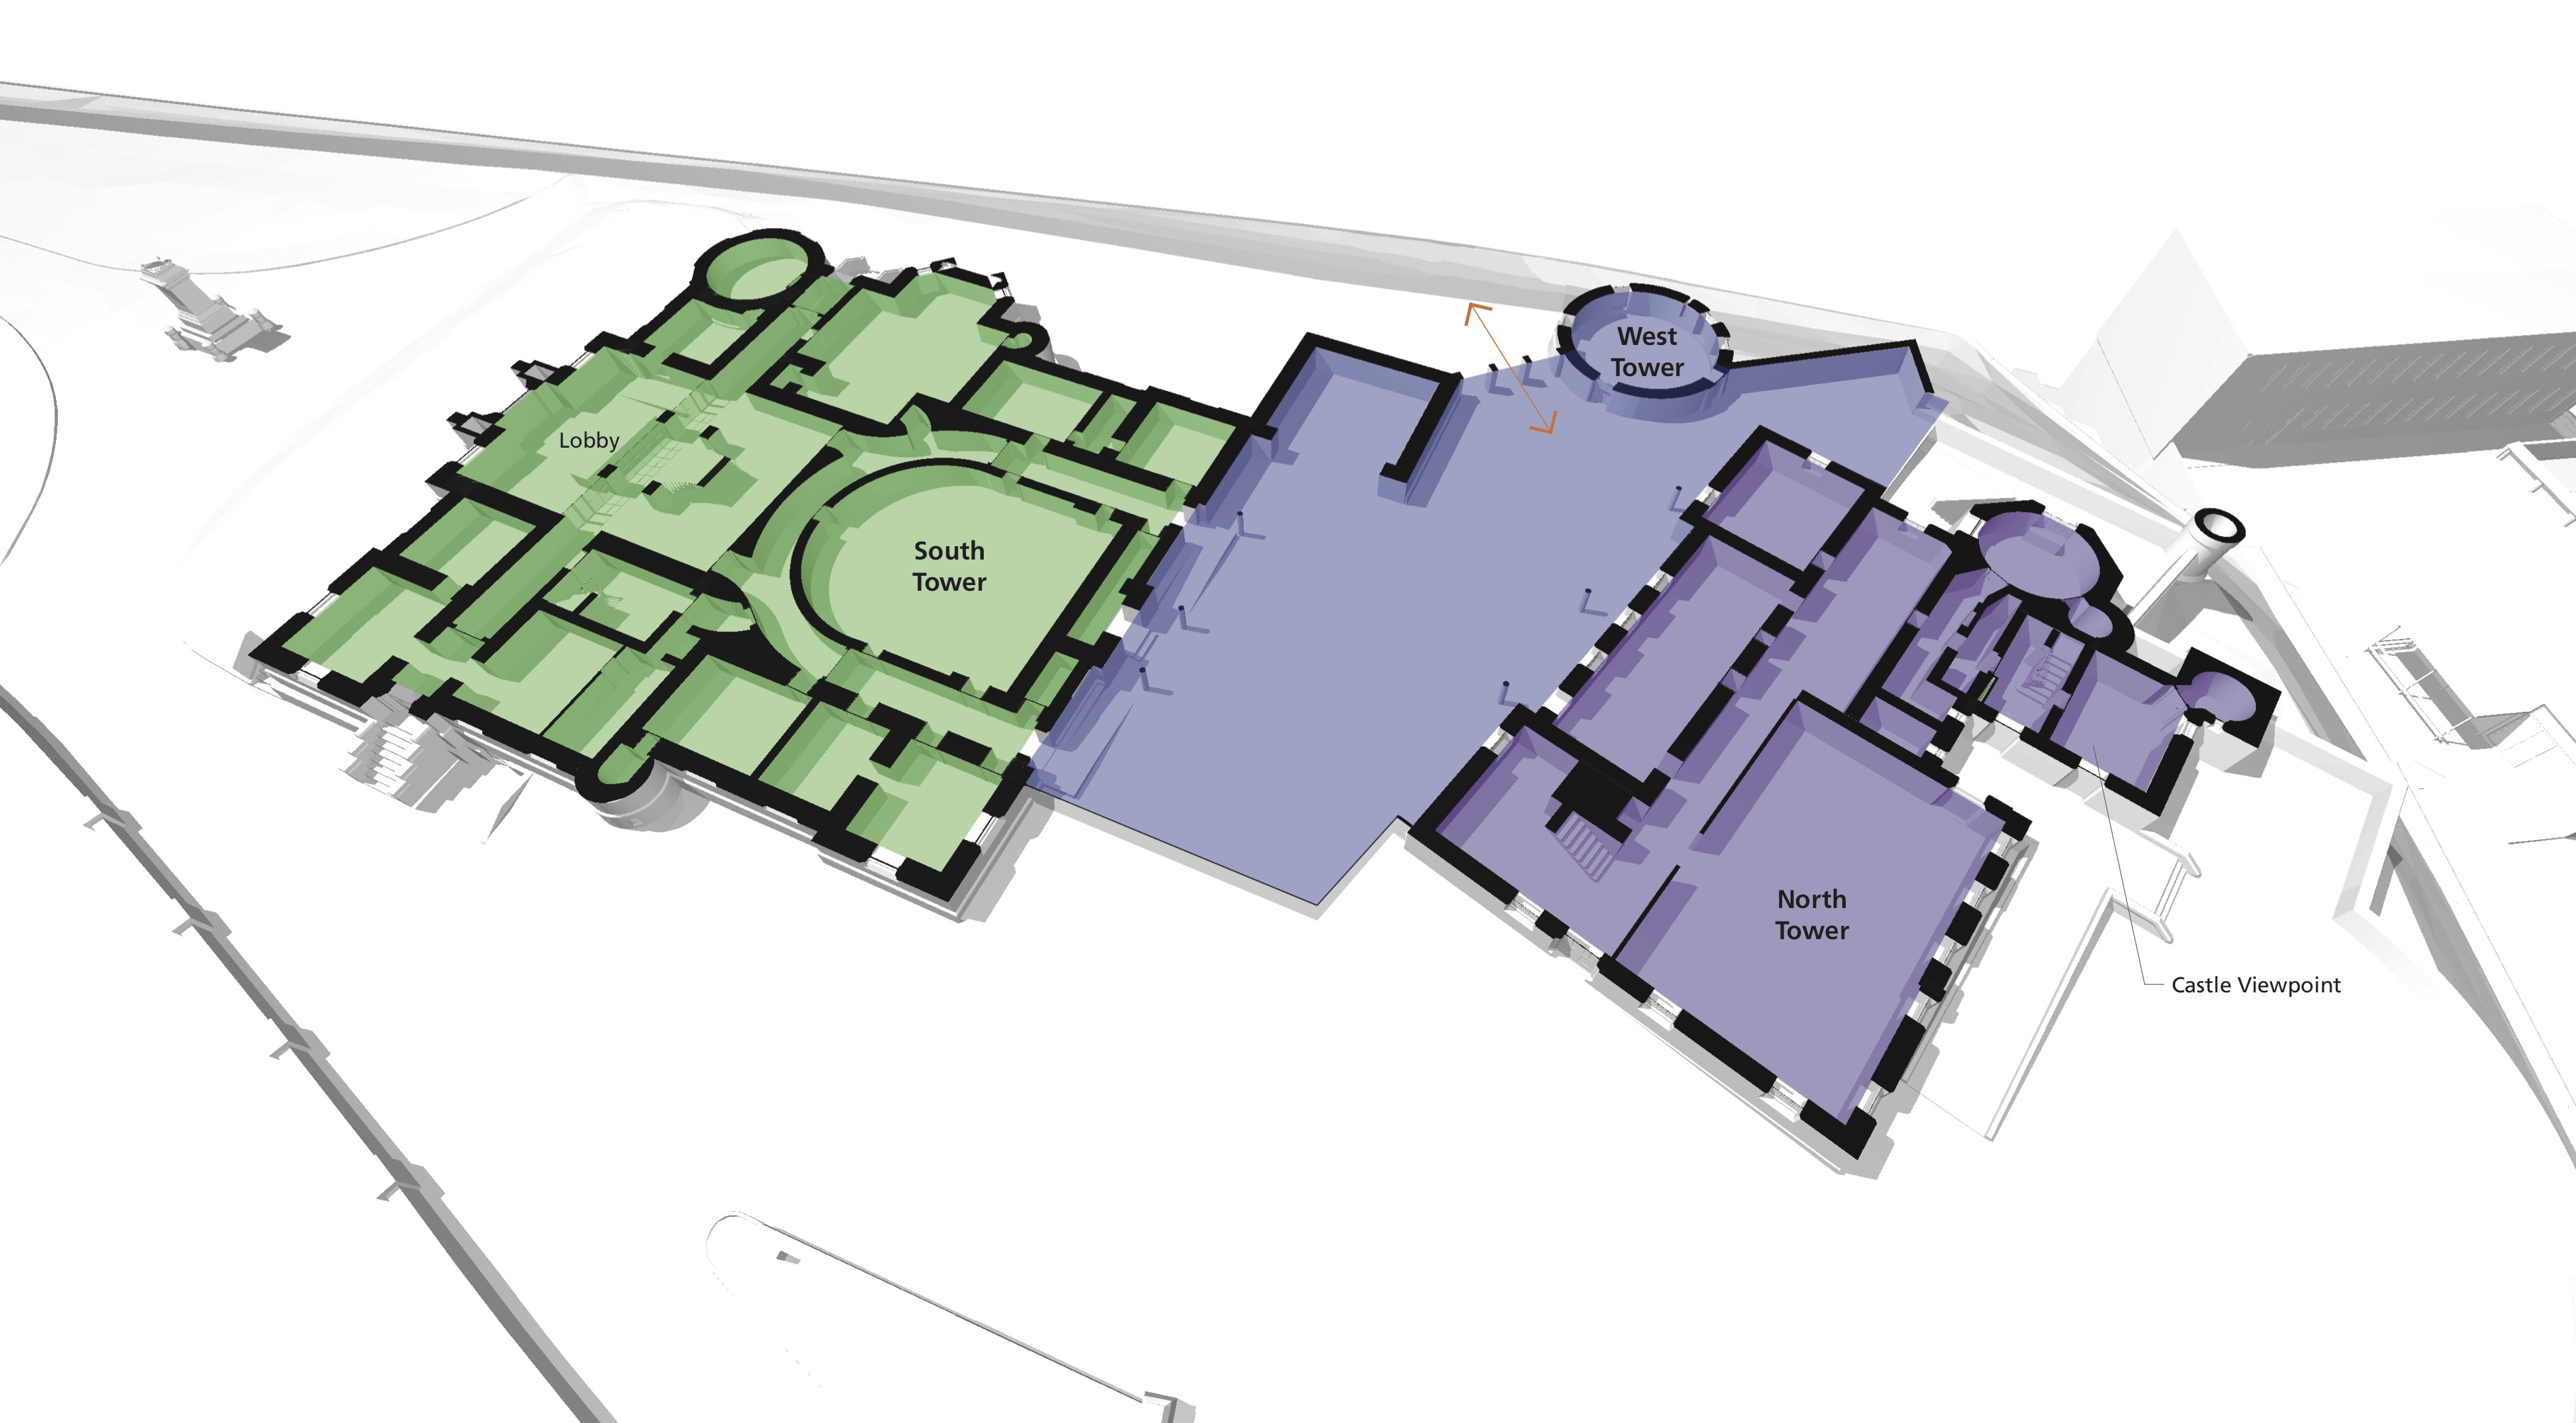 Proposed ground floor layout of Inverness Castle. © LDN Architects